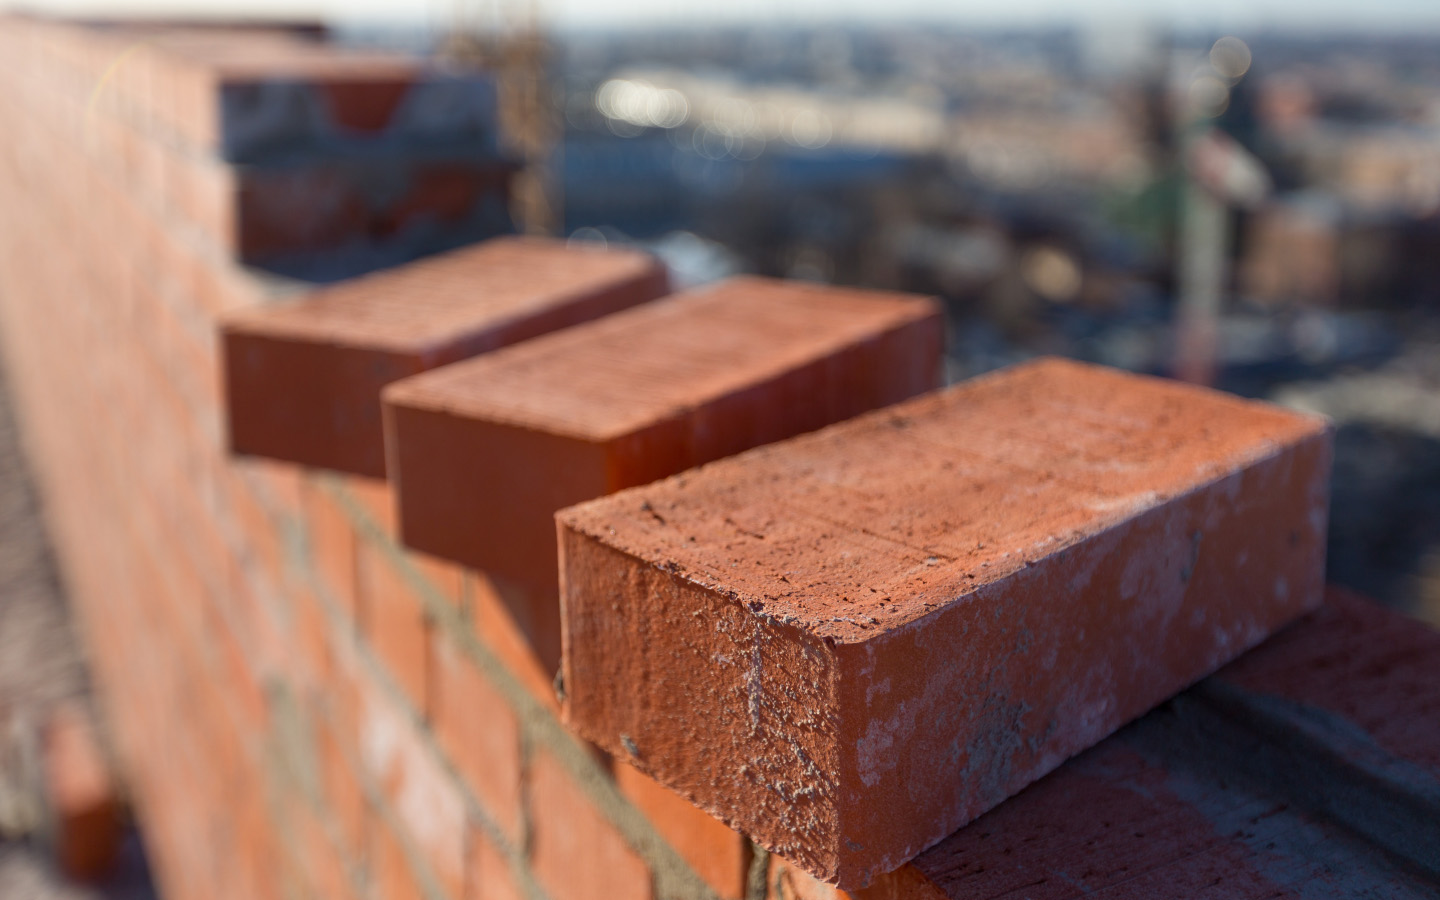 Bricks are important construction material